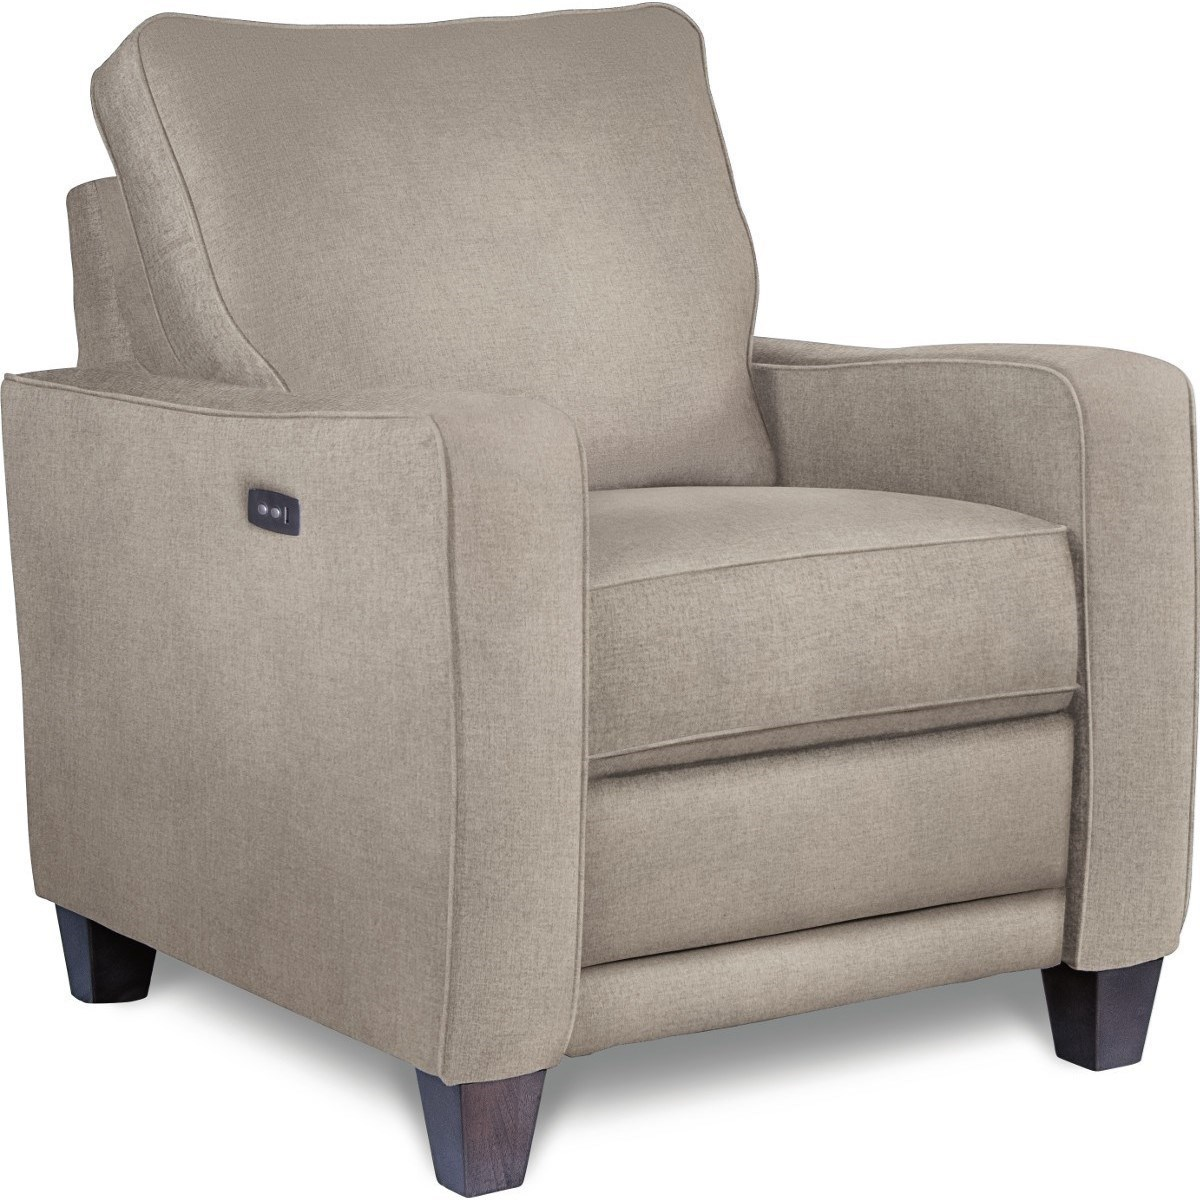 lazy boy recliner chair white dining la z makenna duo power reclining with usb charging port by